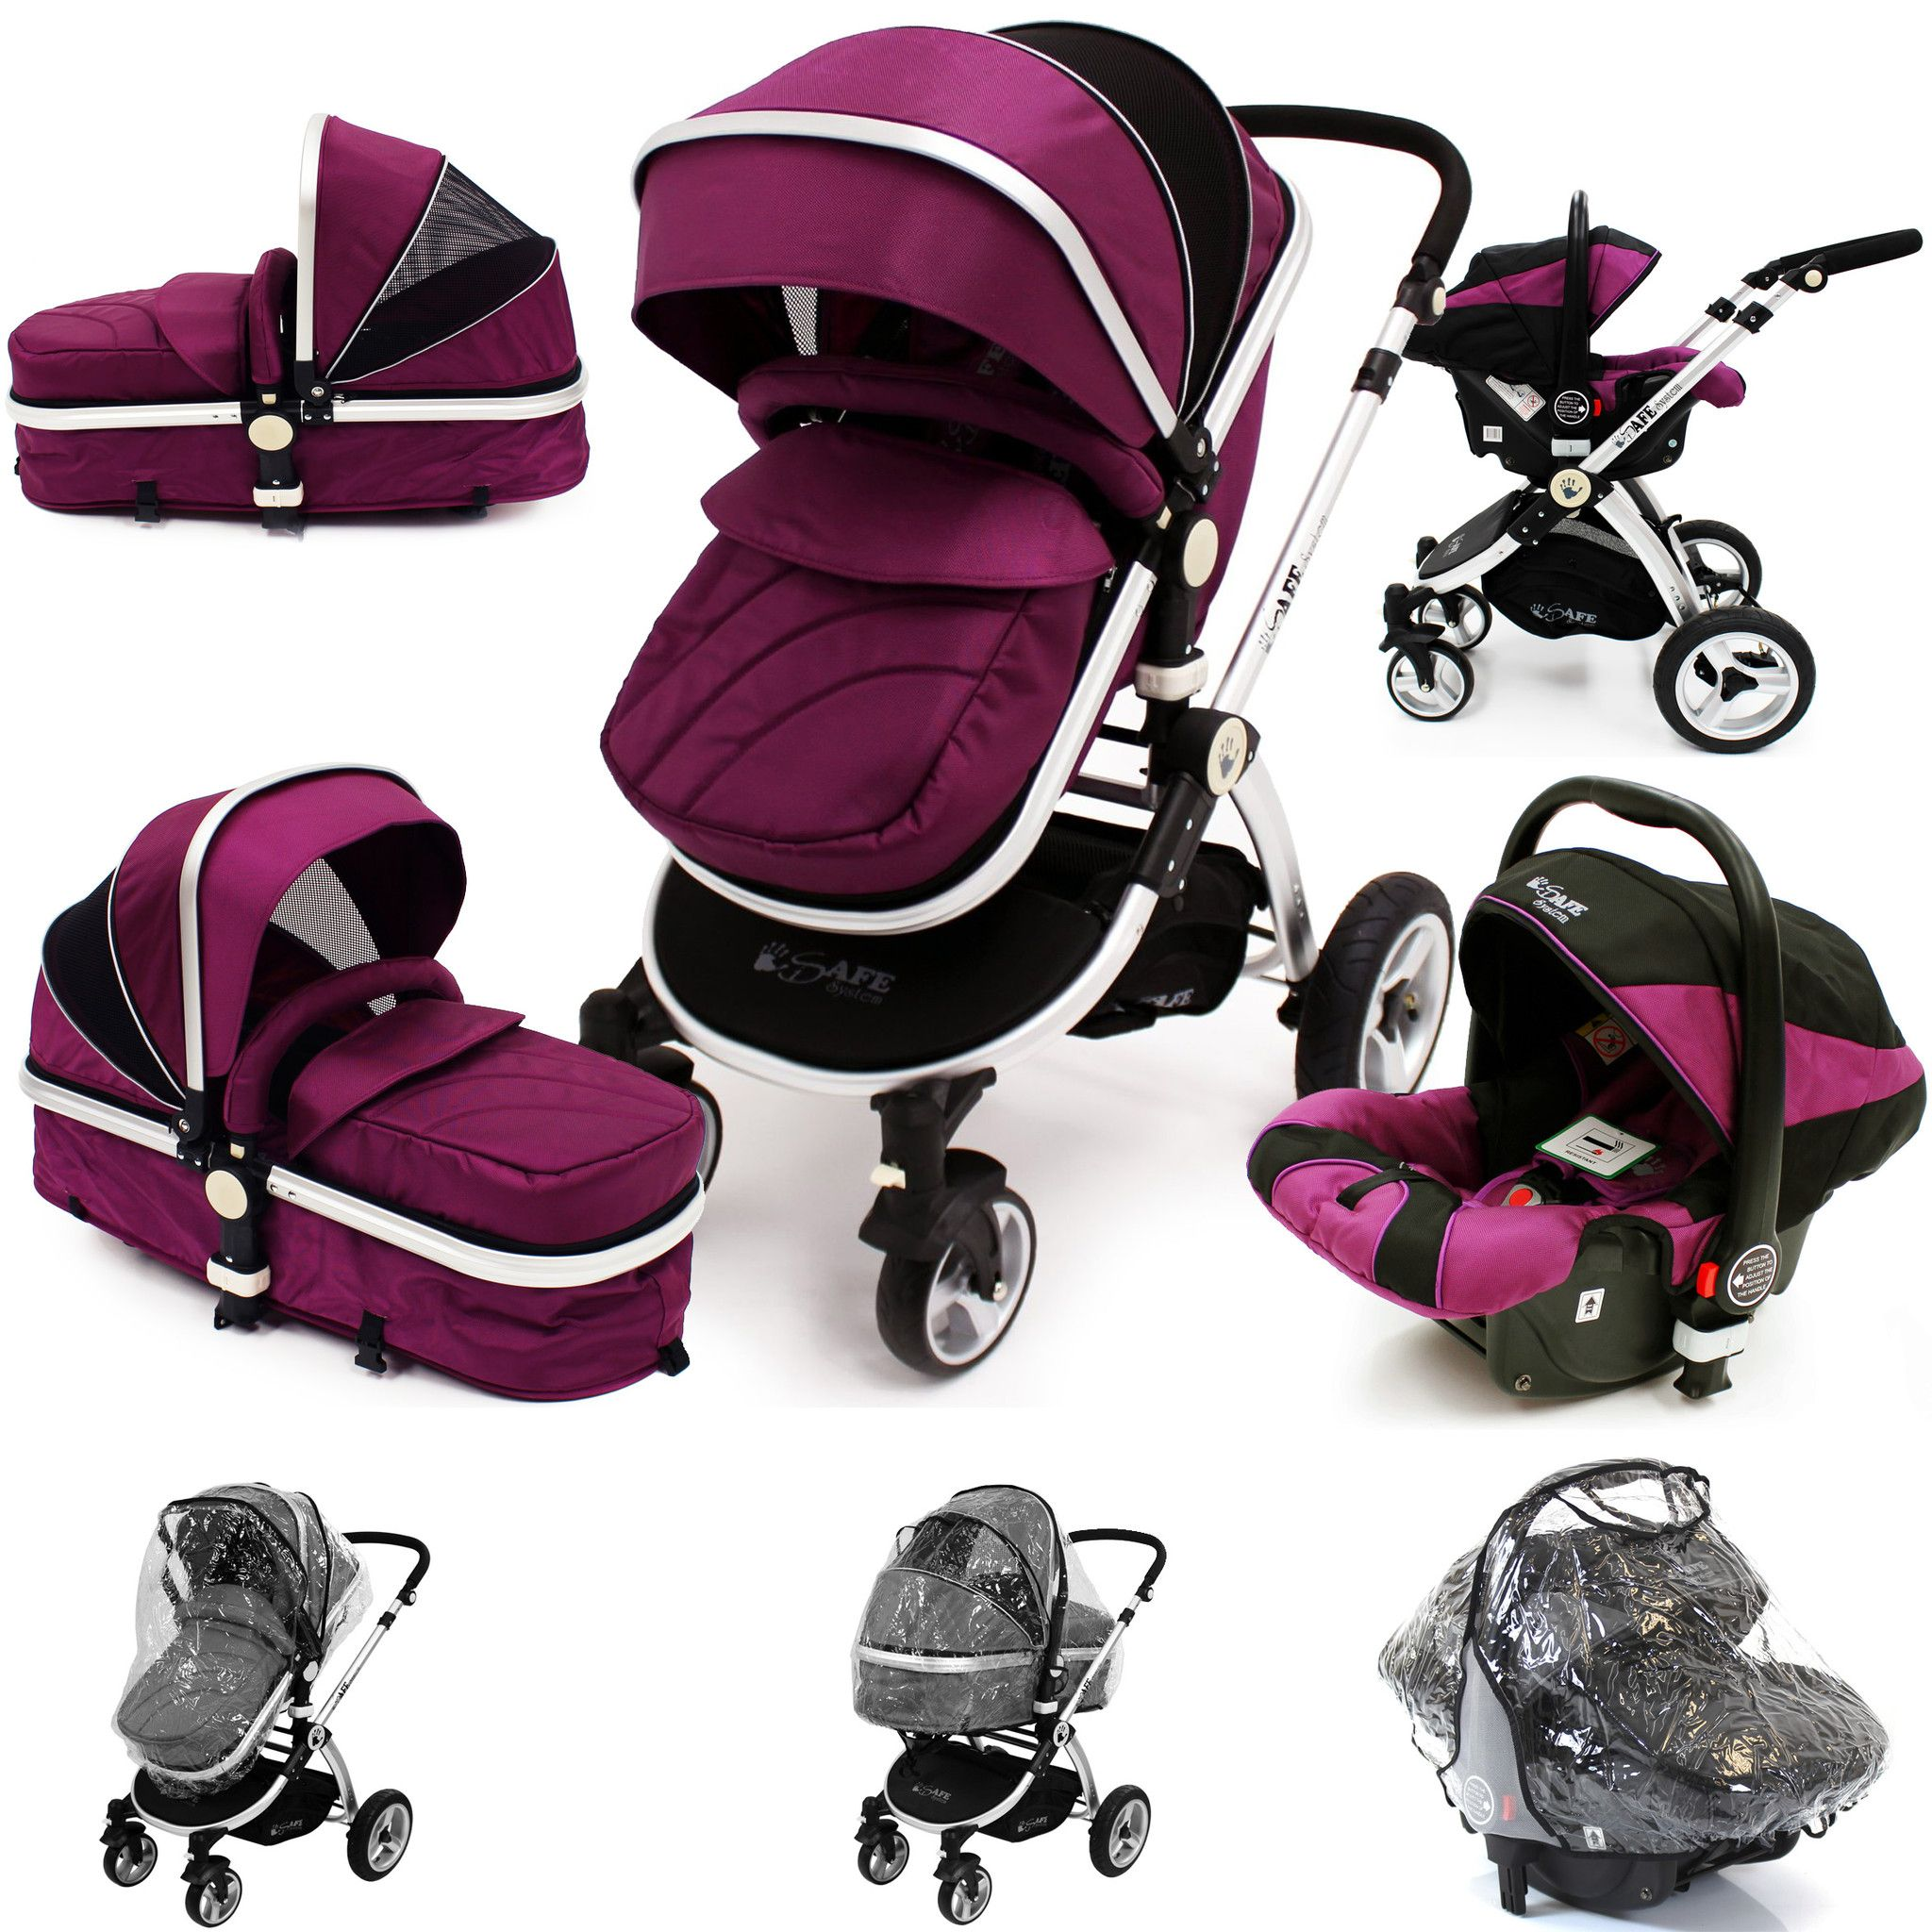 isafe 3 in 1 pram travel system plum purple with. Black Bedroom Furniture Sets. Home Design Ideas